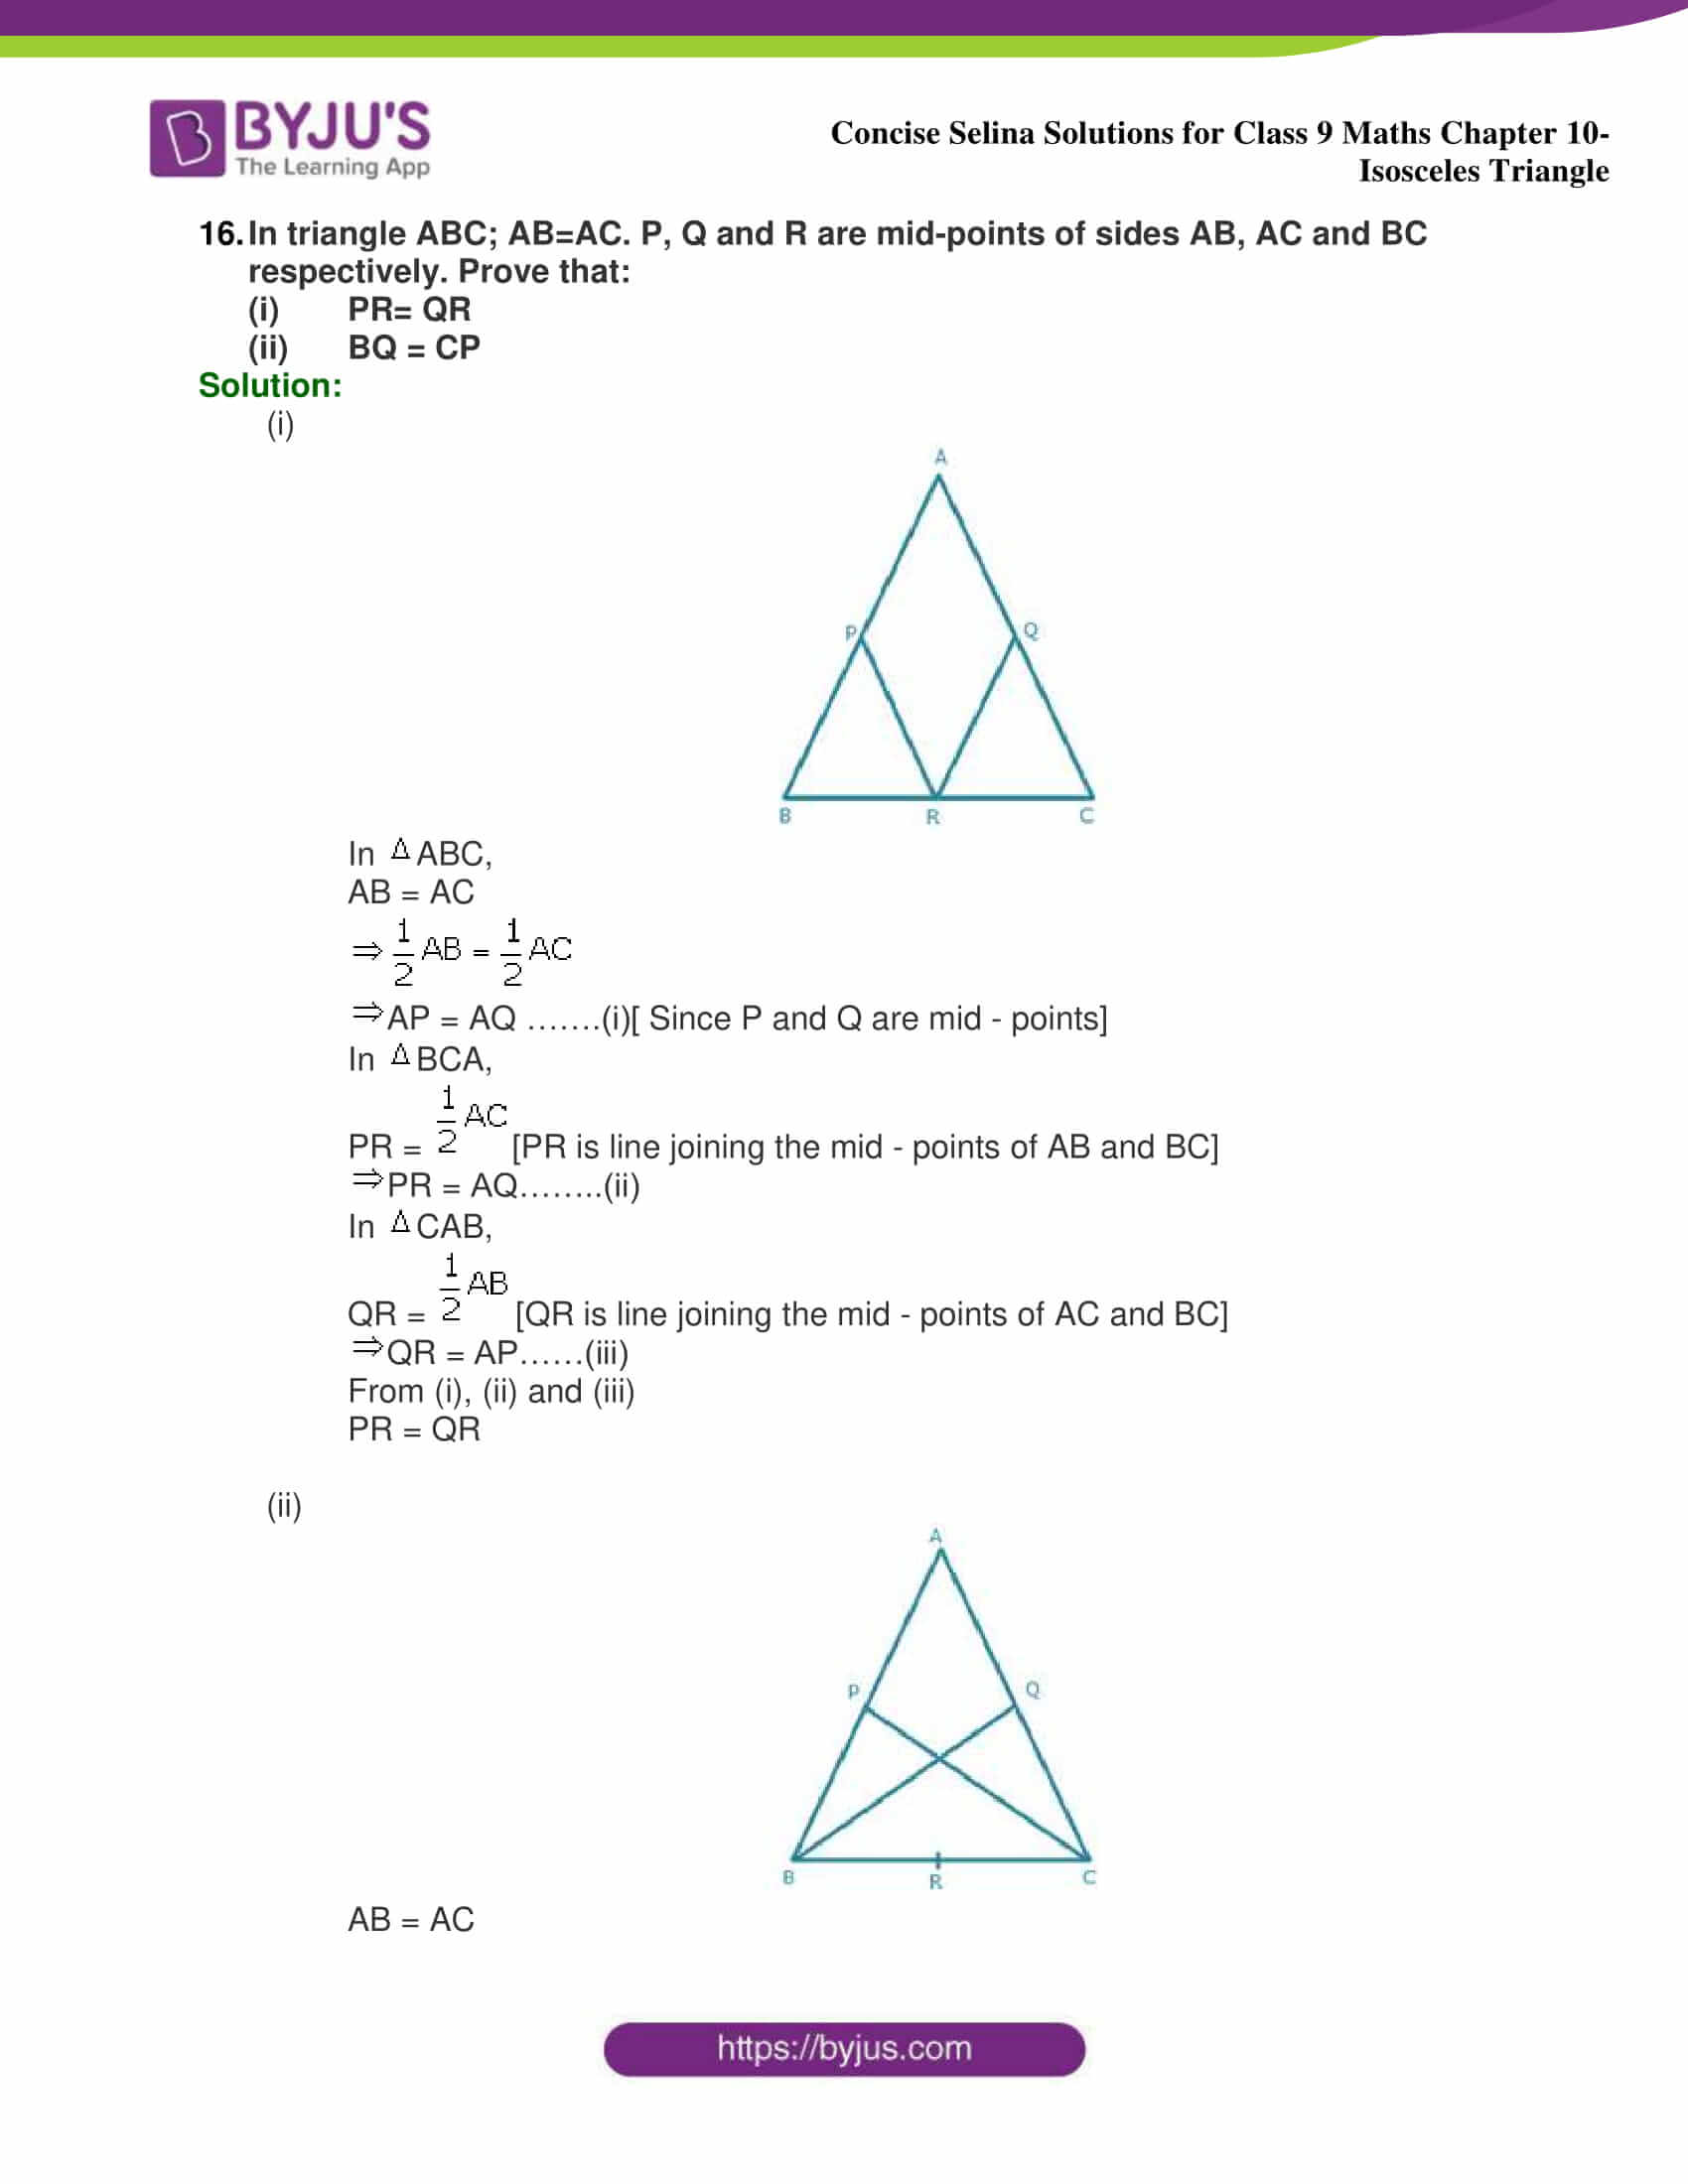 selina Solutions for Class 9 Maths Chapter 10 part 35